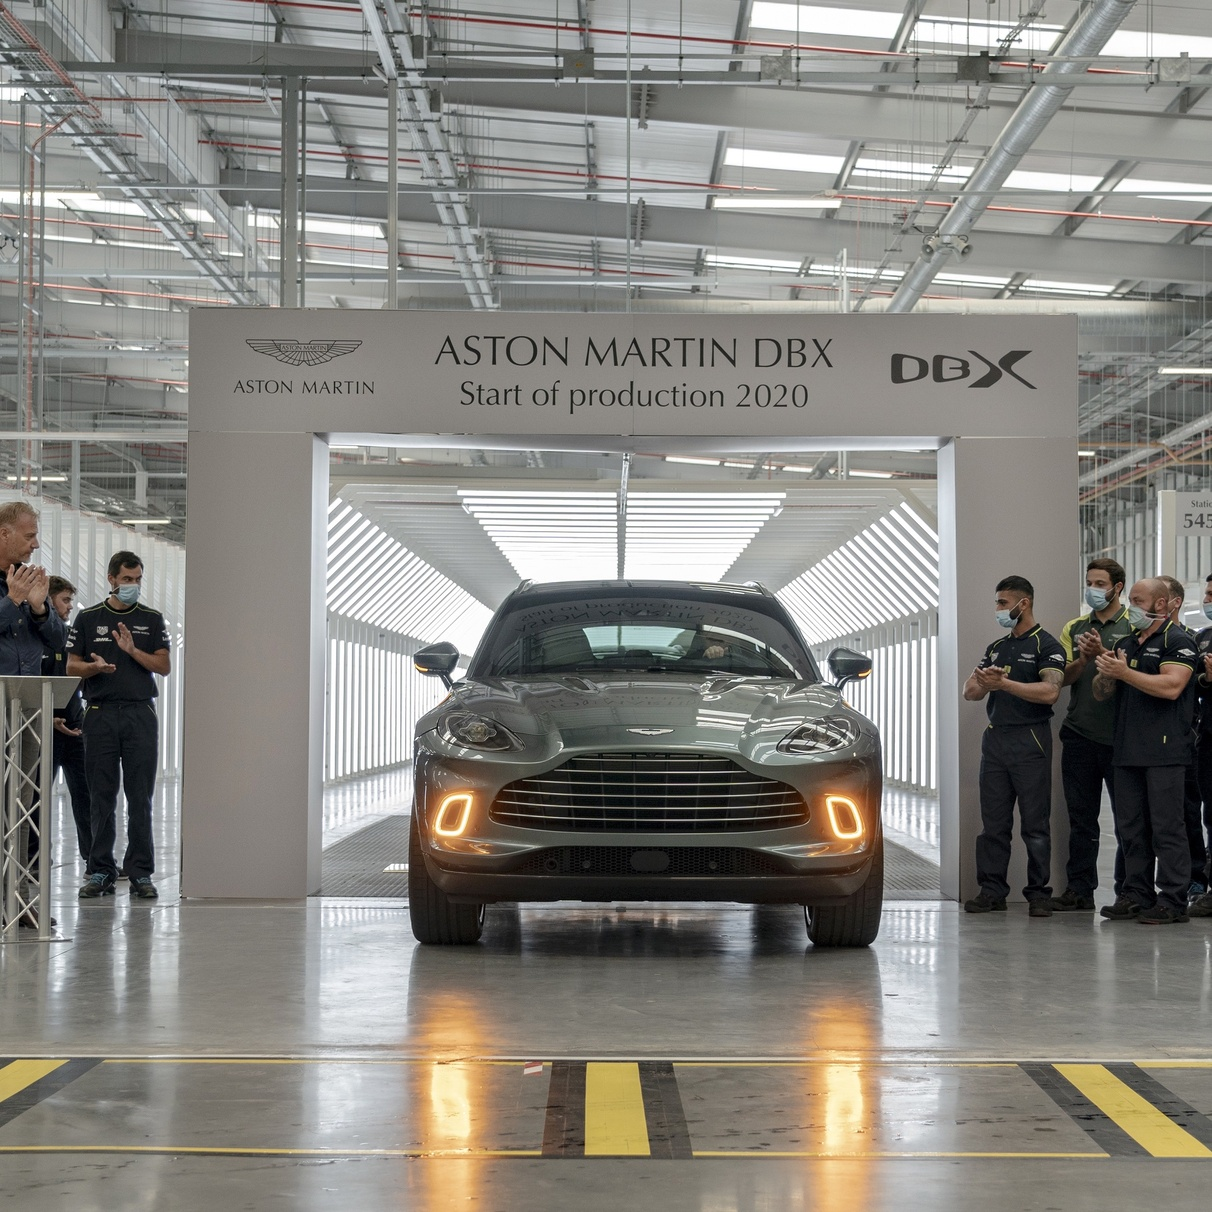 Motoring: Aston Martin's first SUV rolls off production line